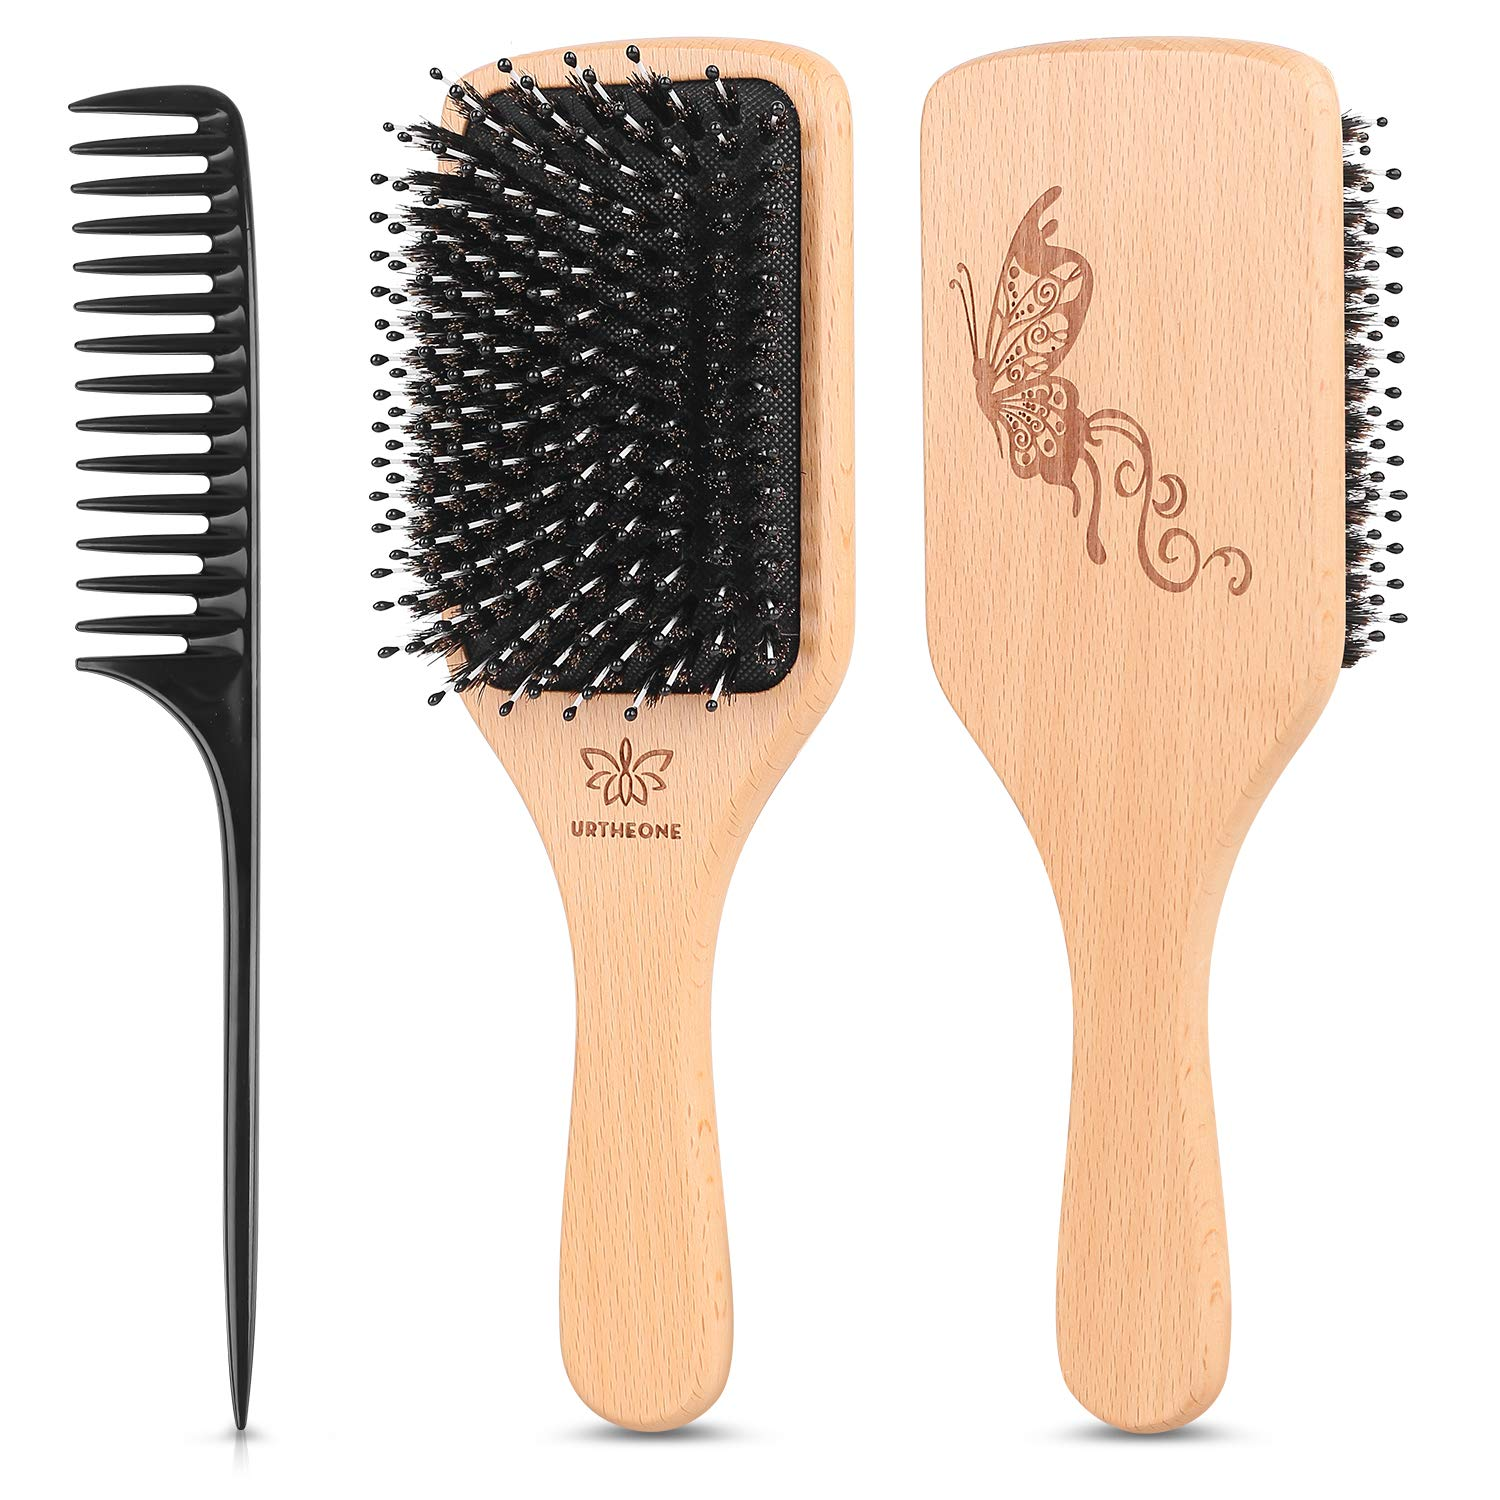 Hair Brush Boar Bristle Hairbrush for Thick Curly Thin Long Short Wet or Dry Hair Adds Shine and Makes Hair Smooth, Best Paddle Hair Brush for Men Women Kids by URTHEONE